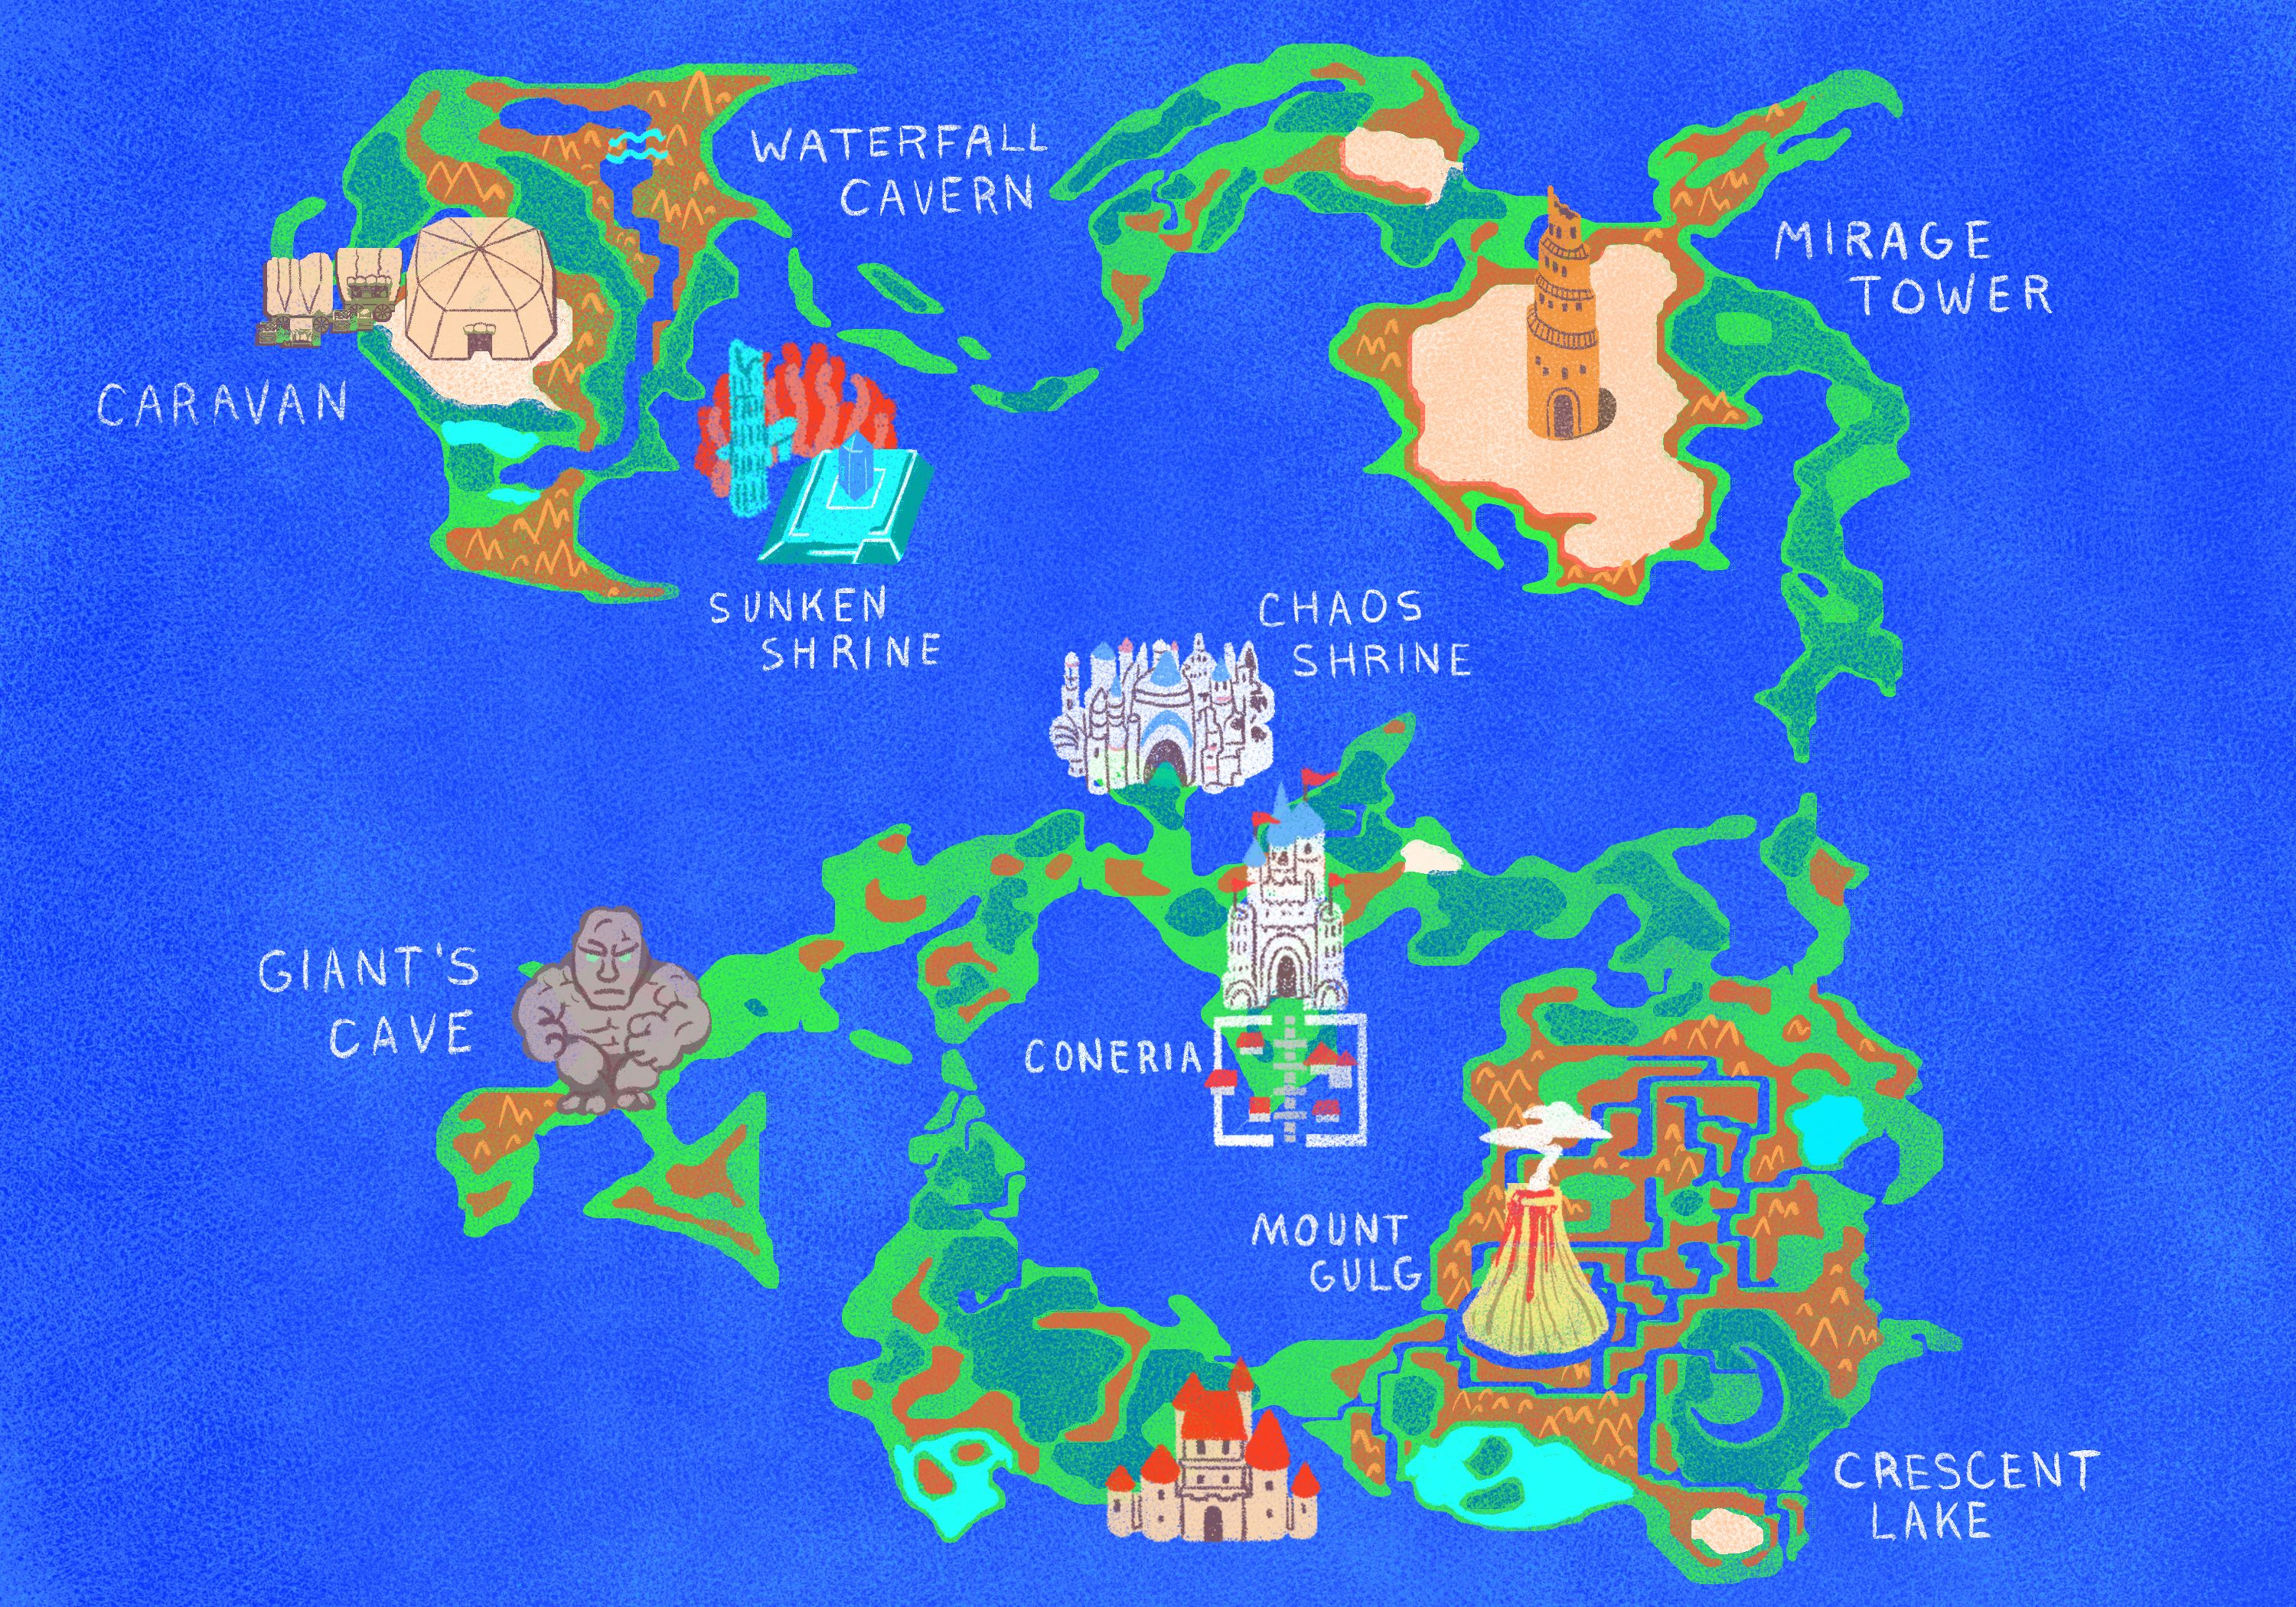 Final Fantasy 1 World Map Final Fantasy map, Angelica Alzona (With images) | Final fantasy